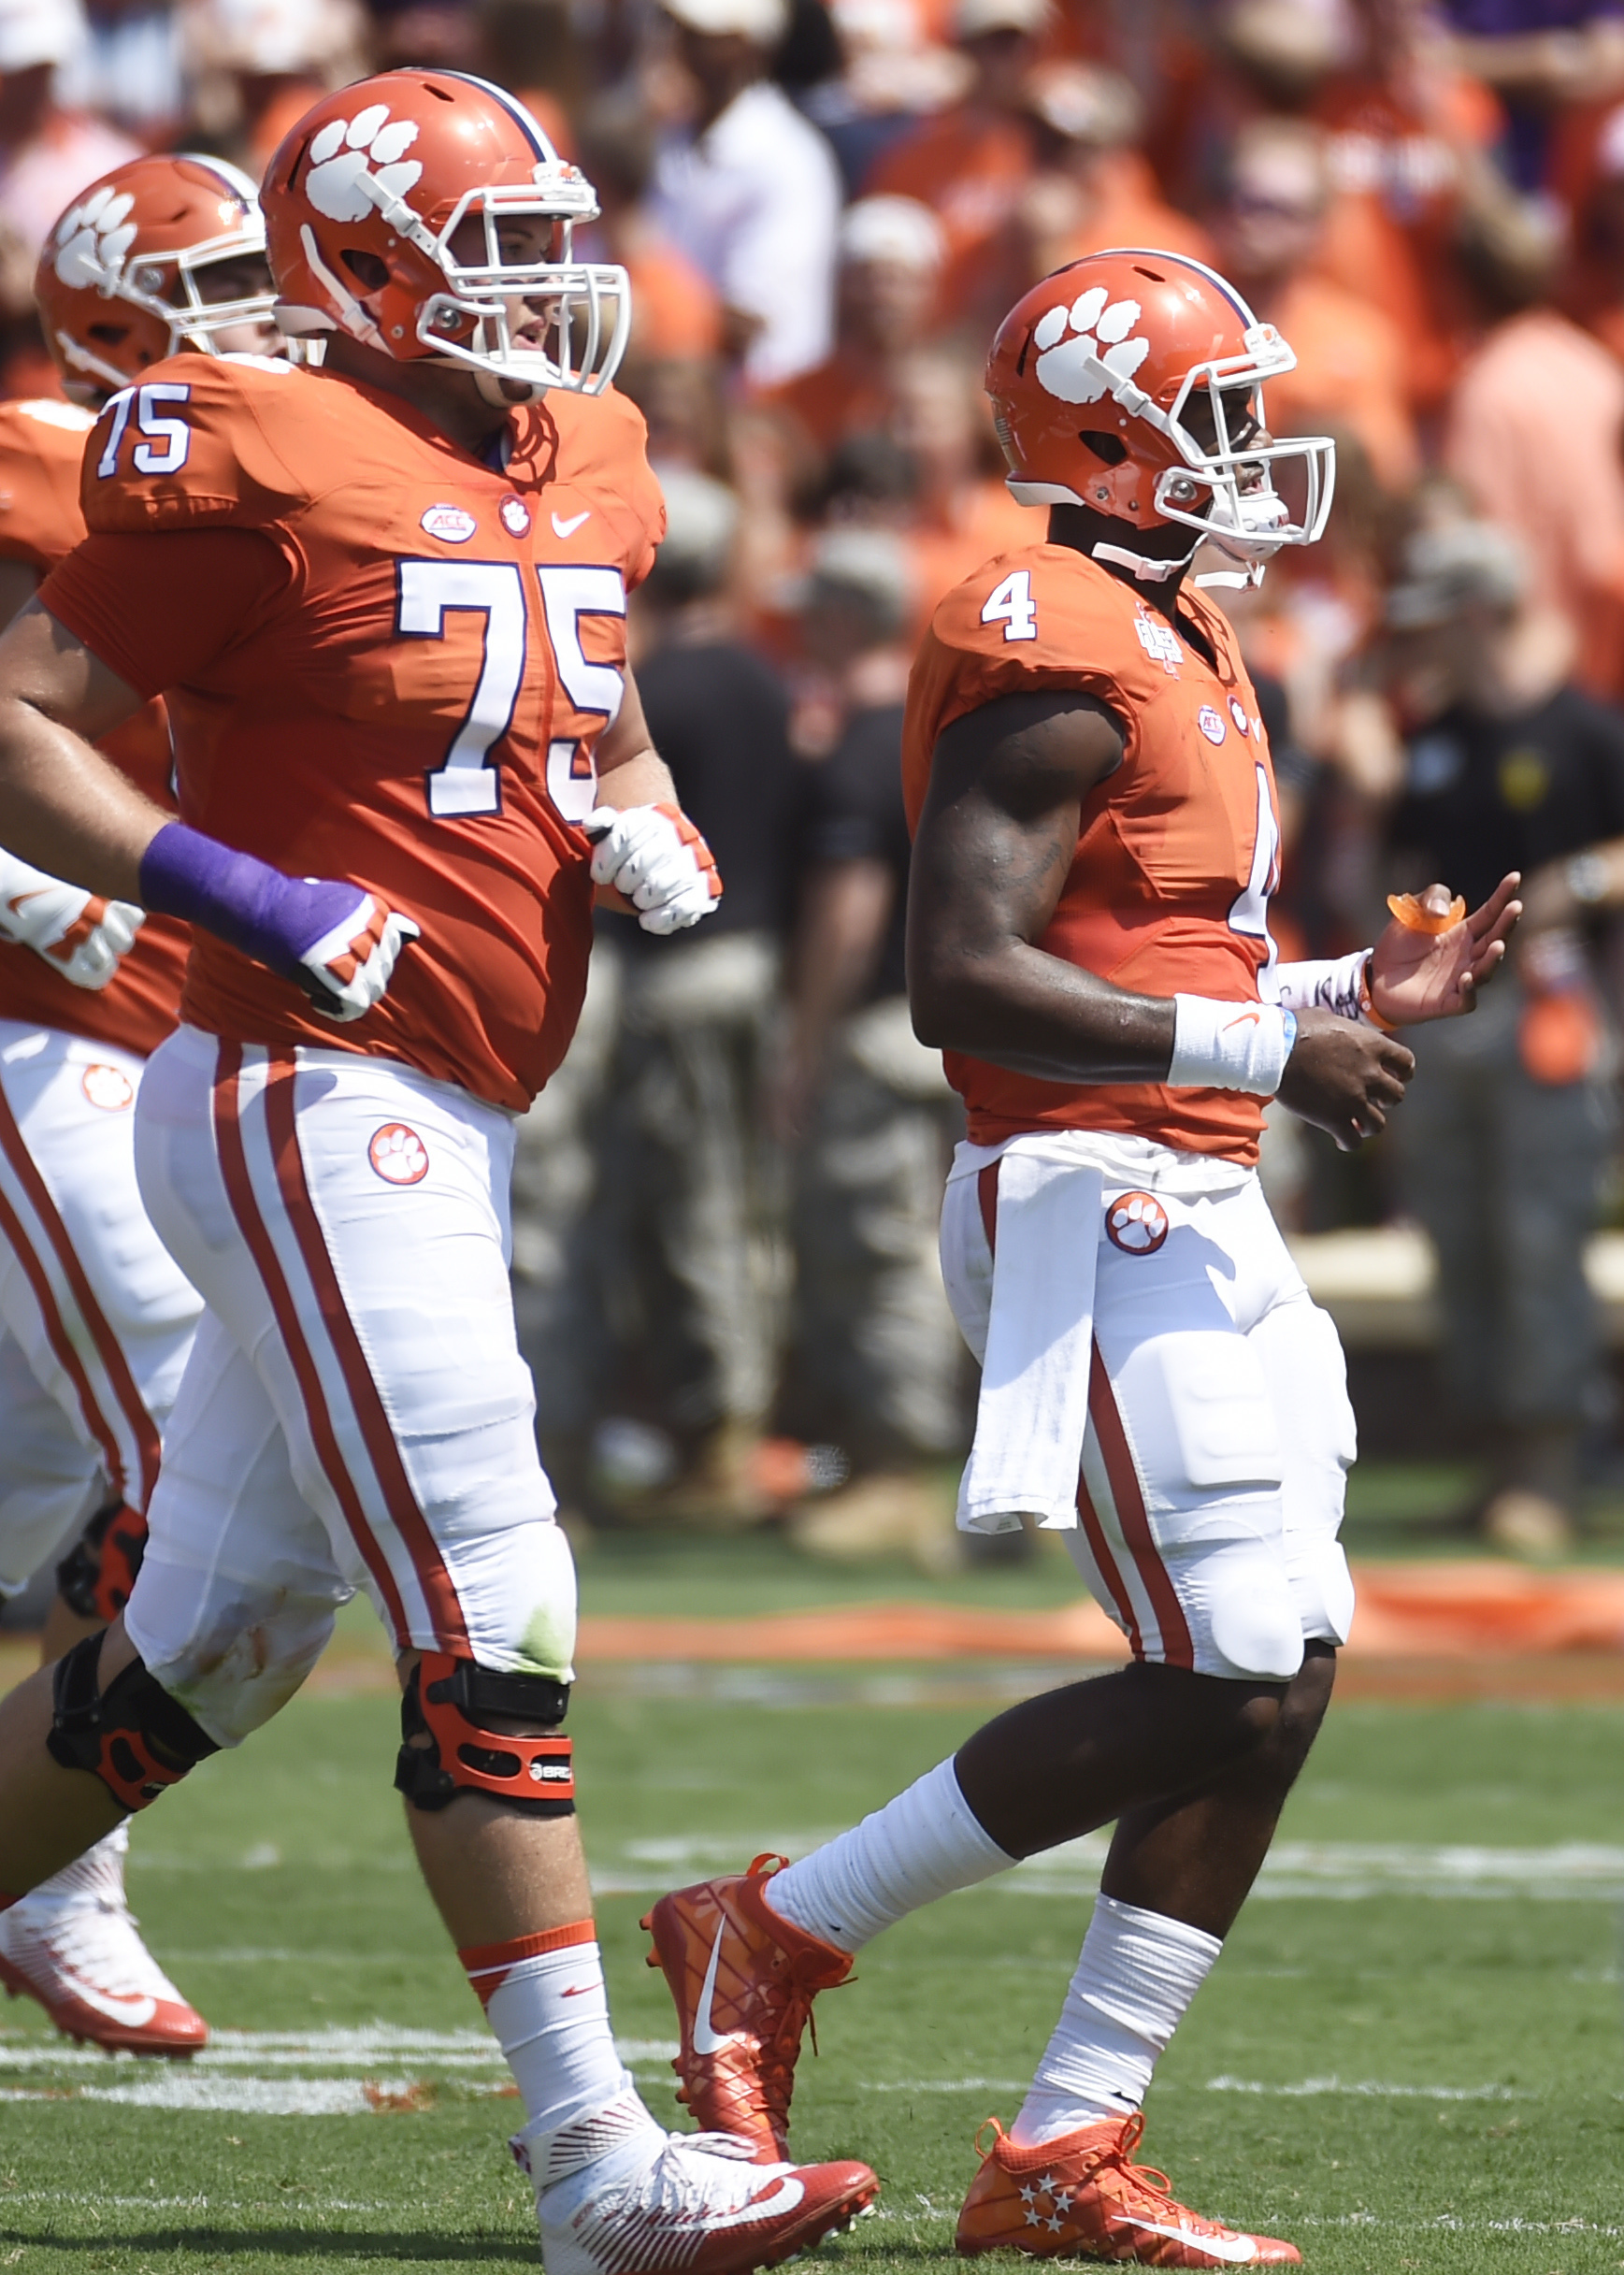 Clemson quarterback Deshaun Watson (4) reacts after throwing an interception to Troy during the first half on an NCAA college football game on Saturday, Sept. 10, 2016, in Clemson, S.C. (AP Photo/Rainier Ehrhardt)